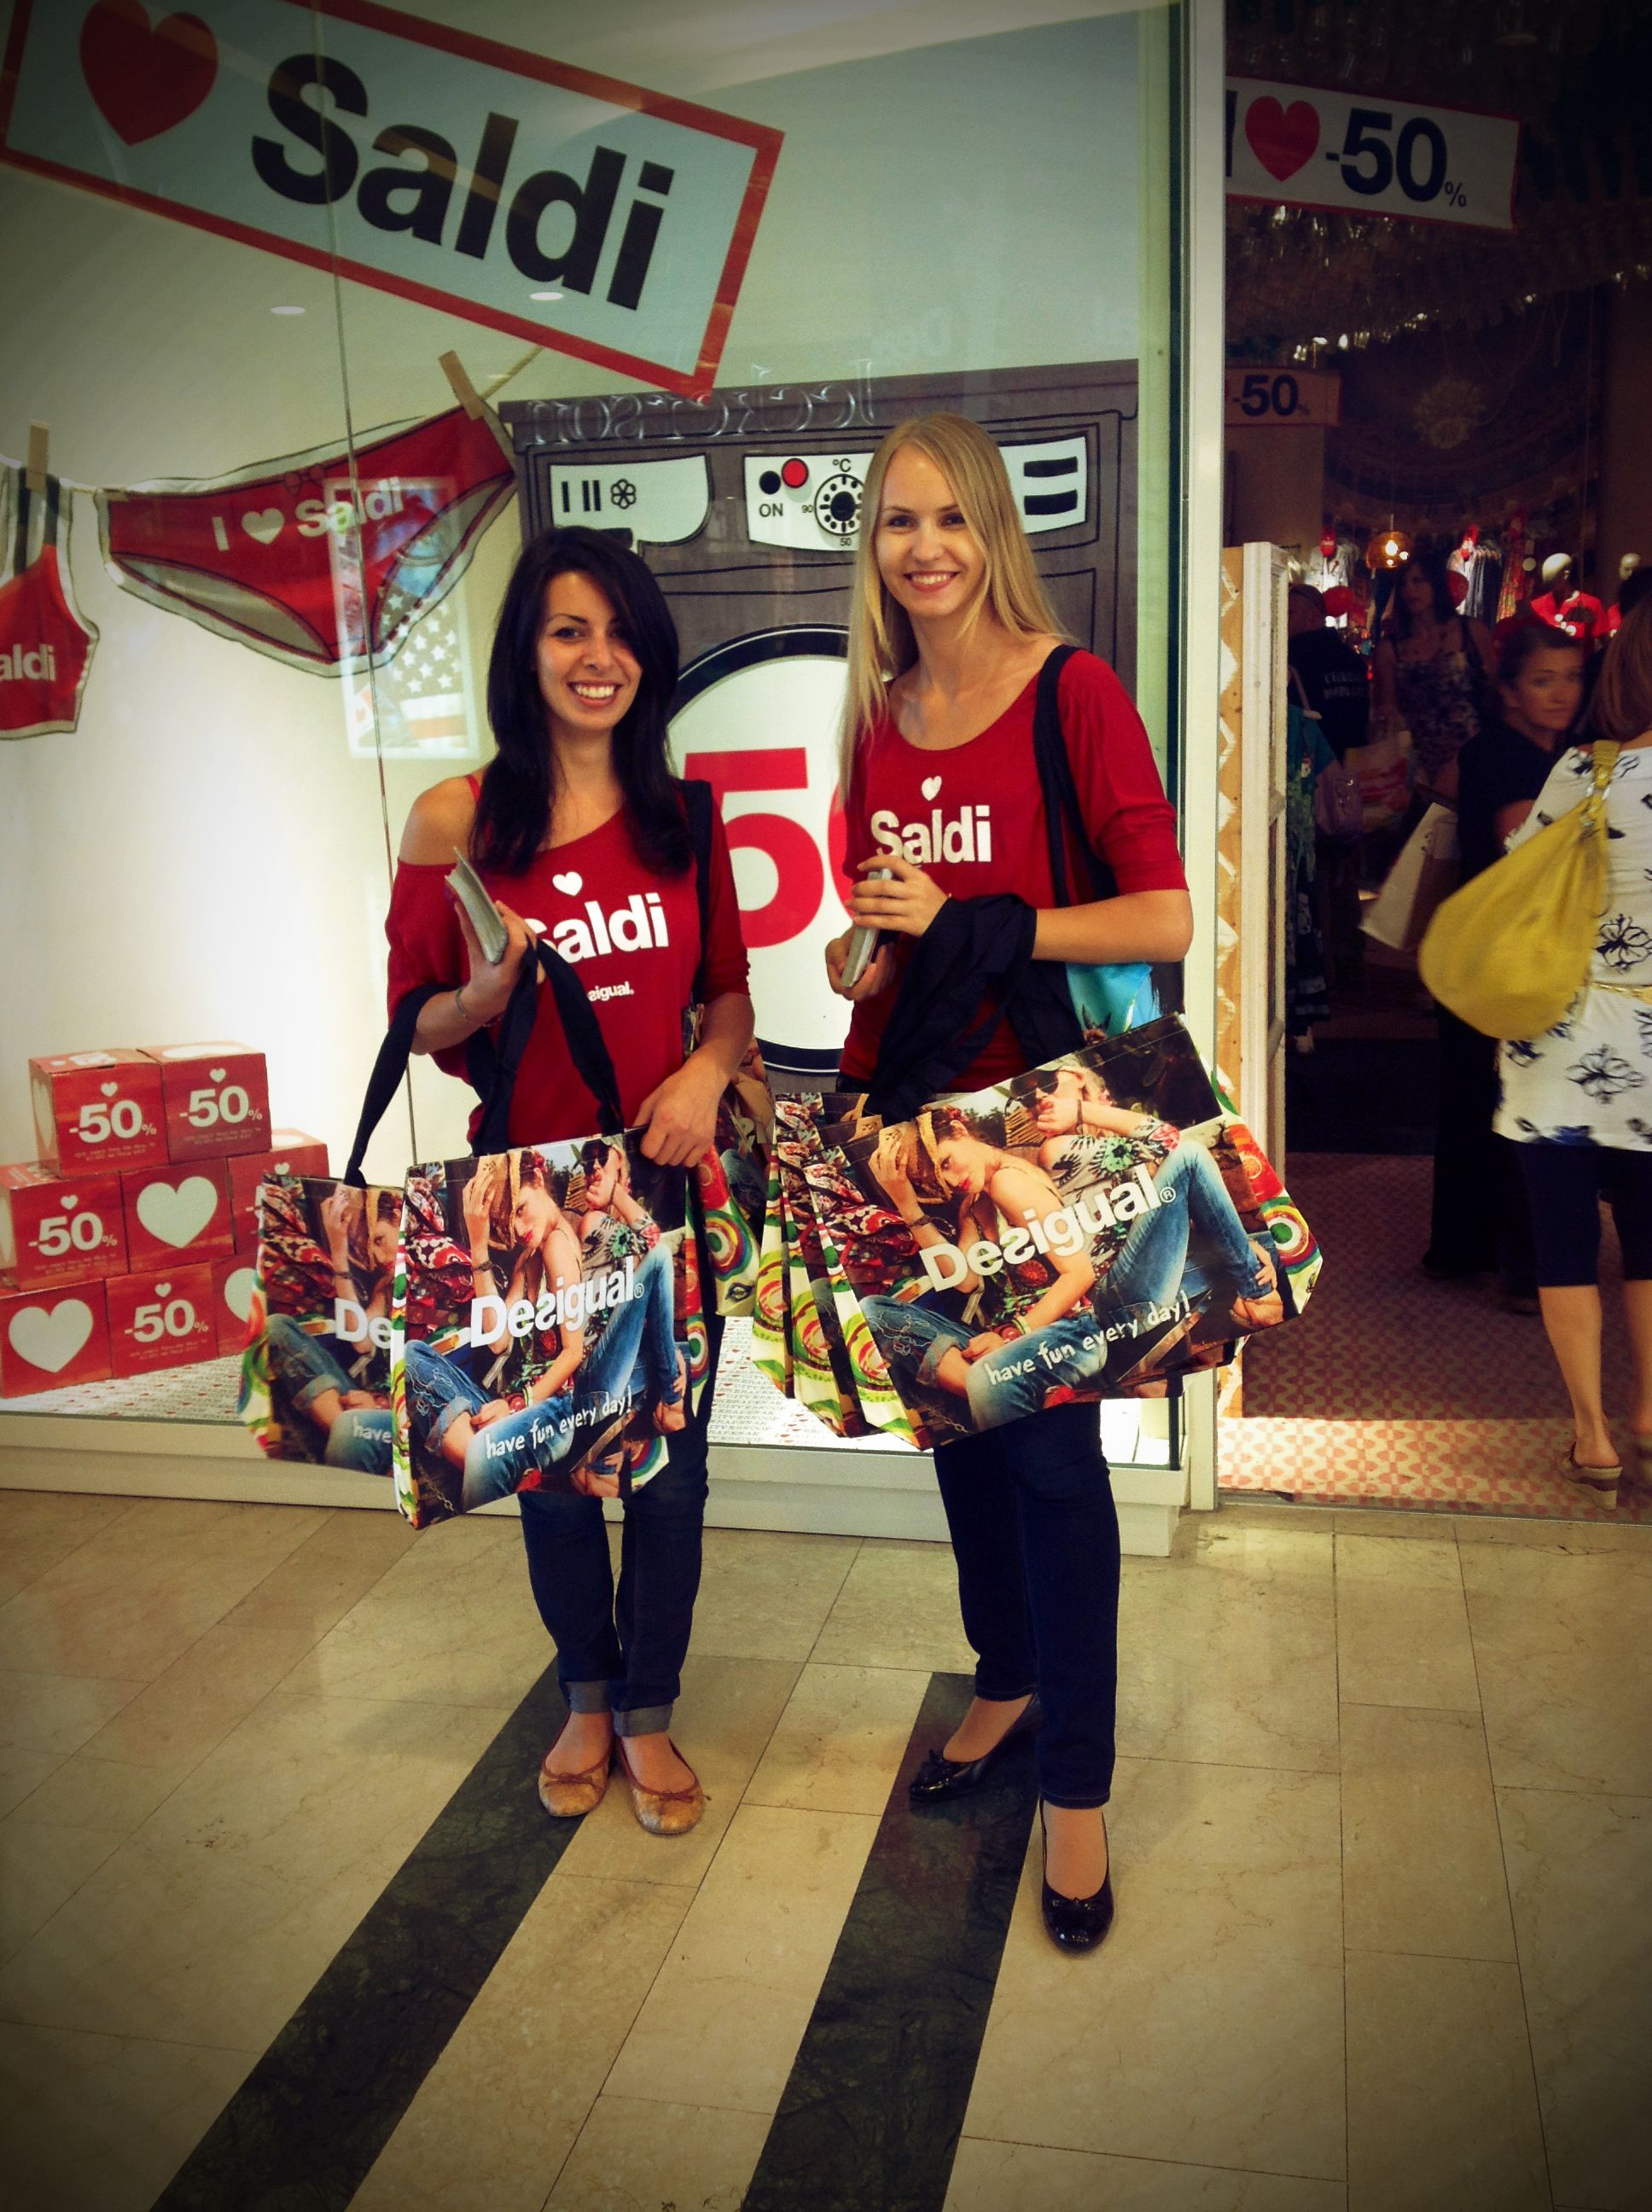 Soldes Times!